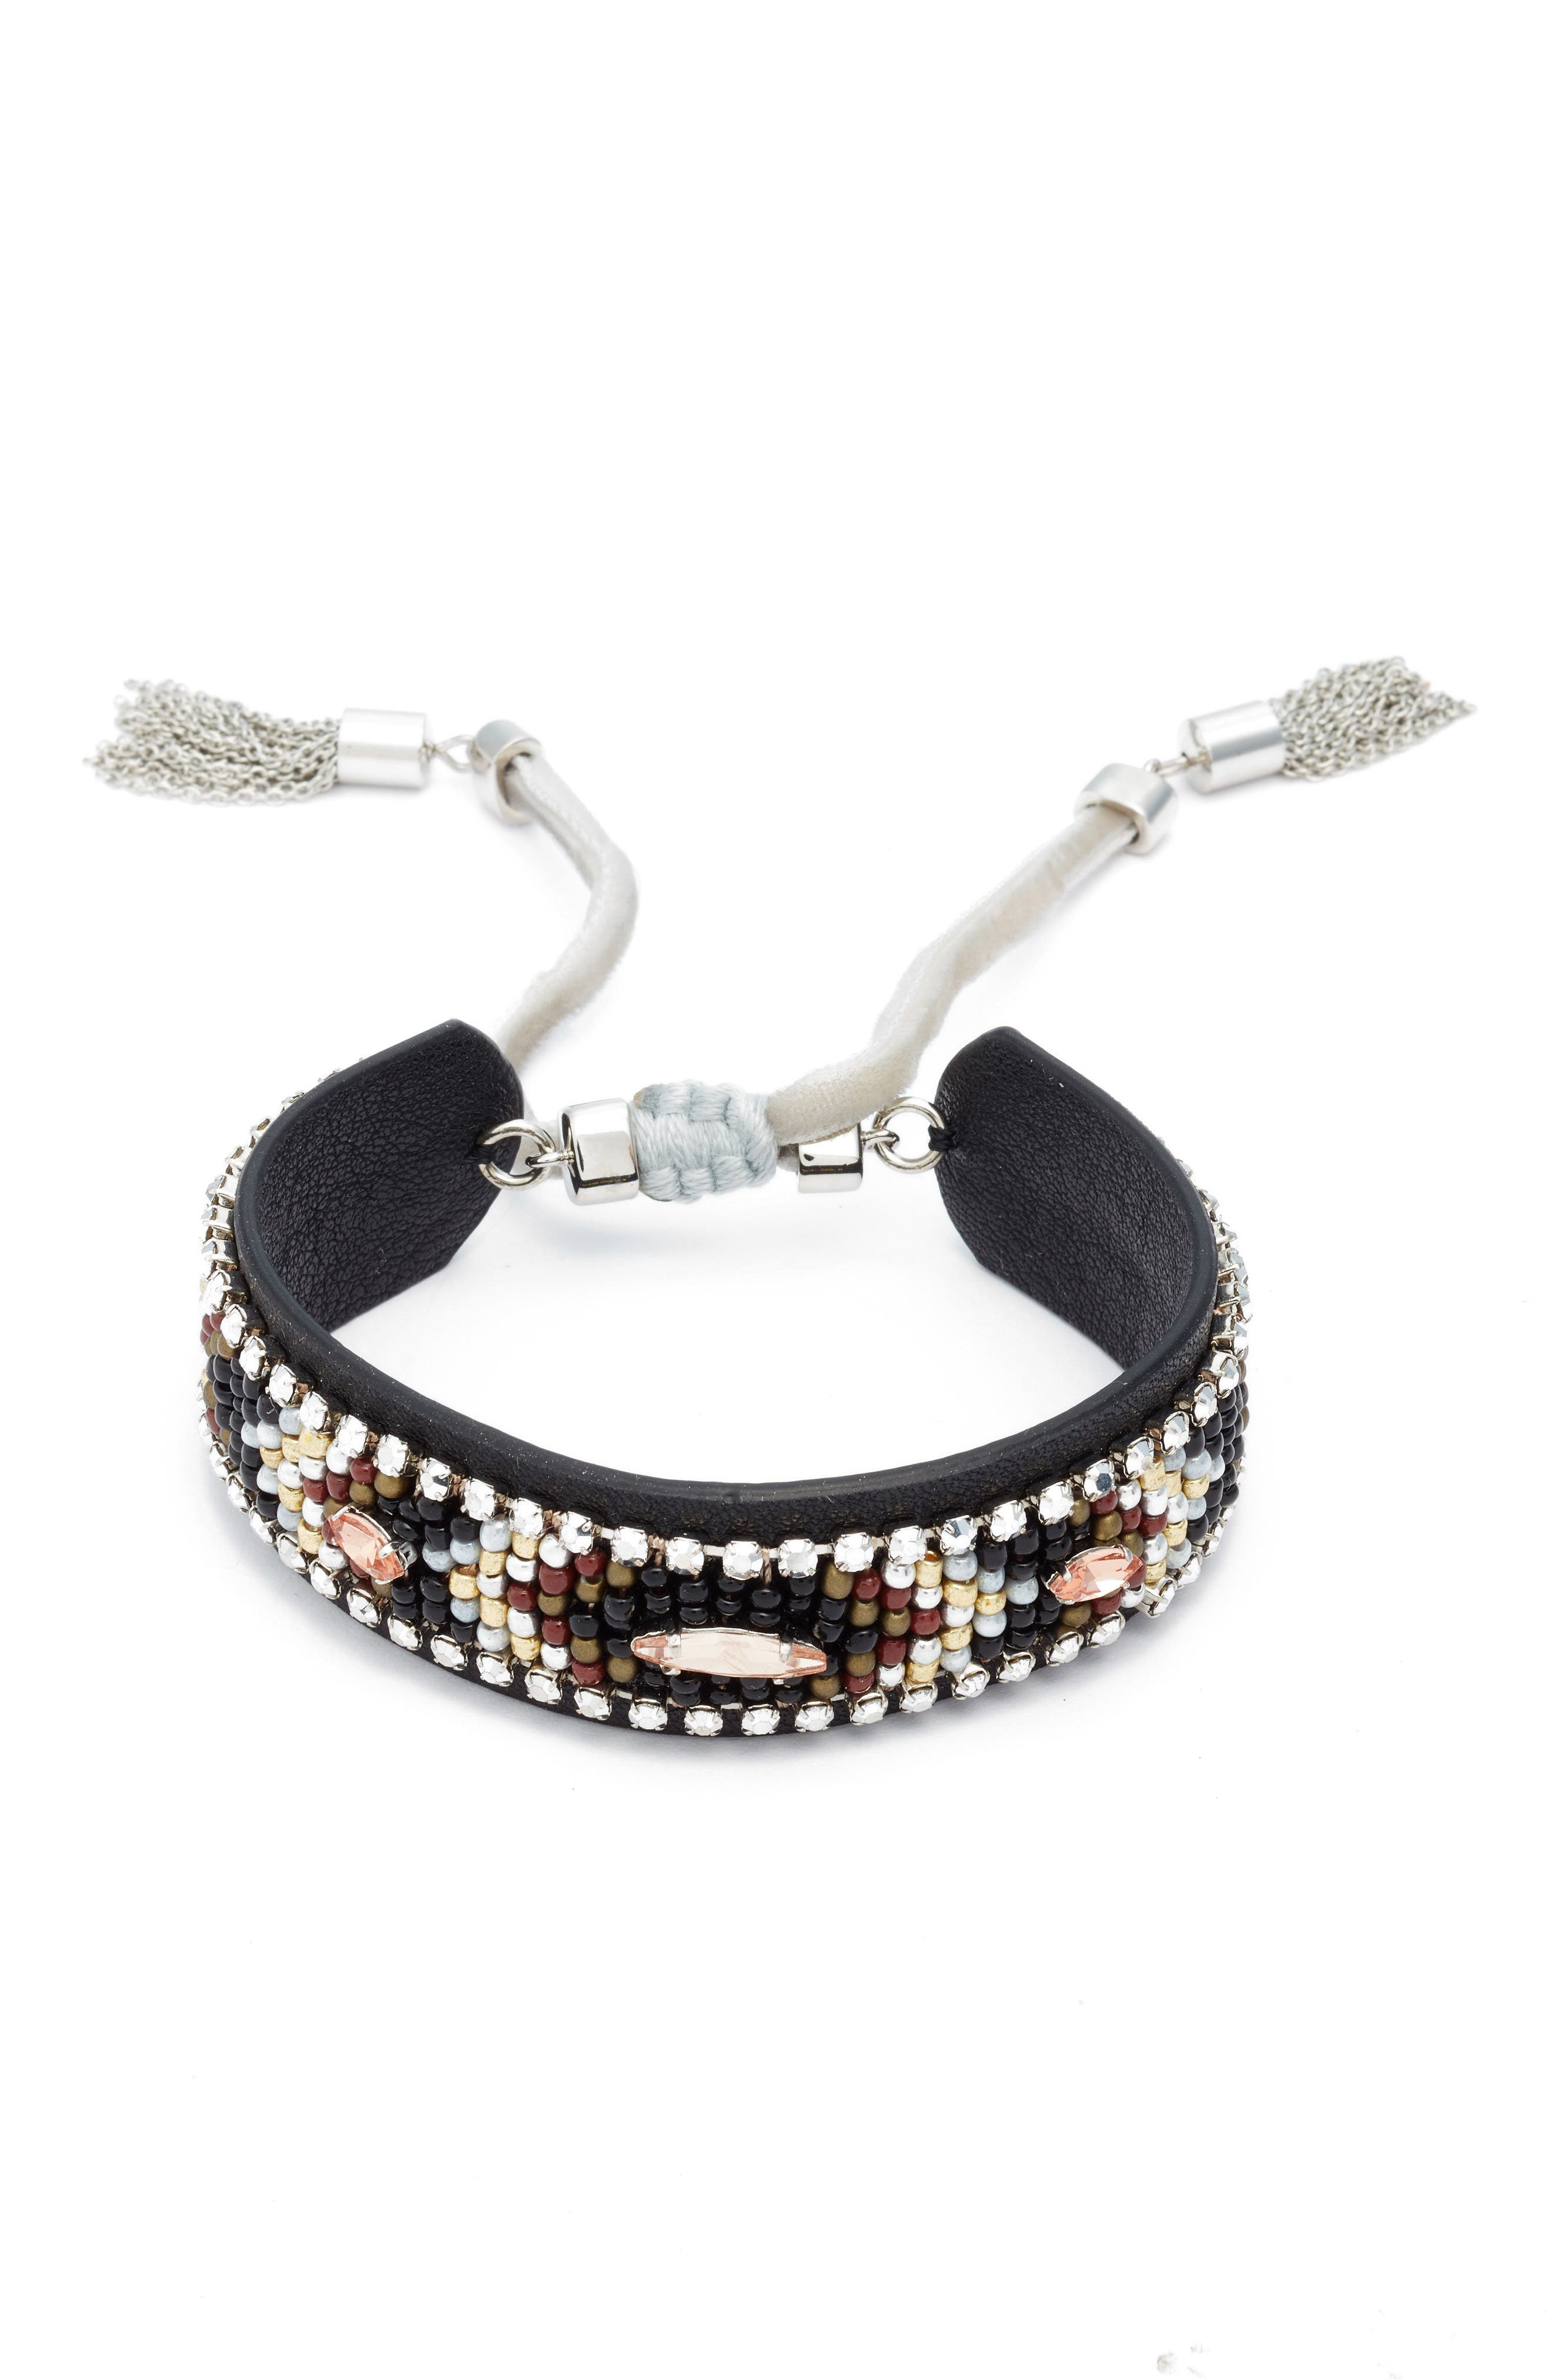 Rebecca Minkoff Leather Friendship Bracelet